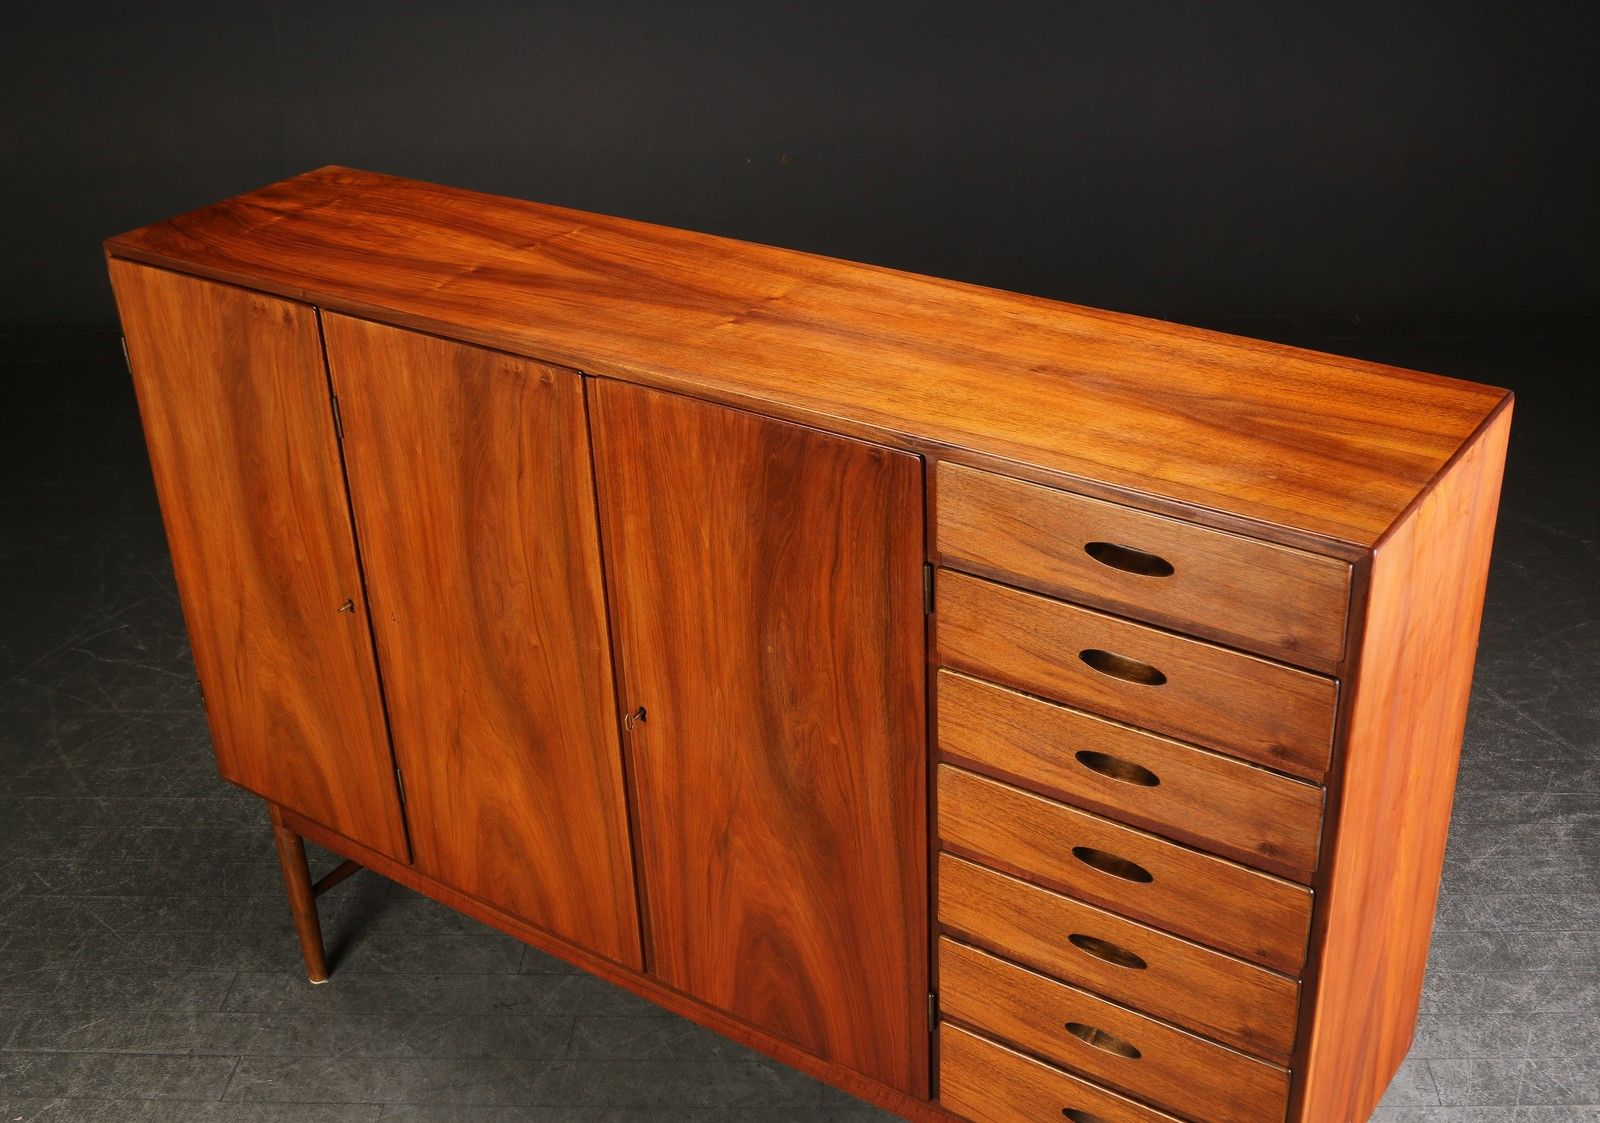 Vintage Sideboard Danish Vintage Danish Sideboard 1950s For Sale At Pamono